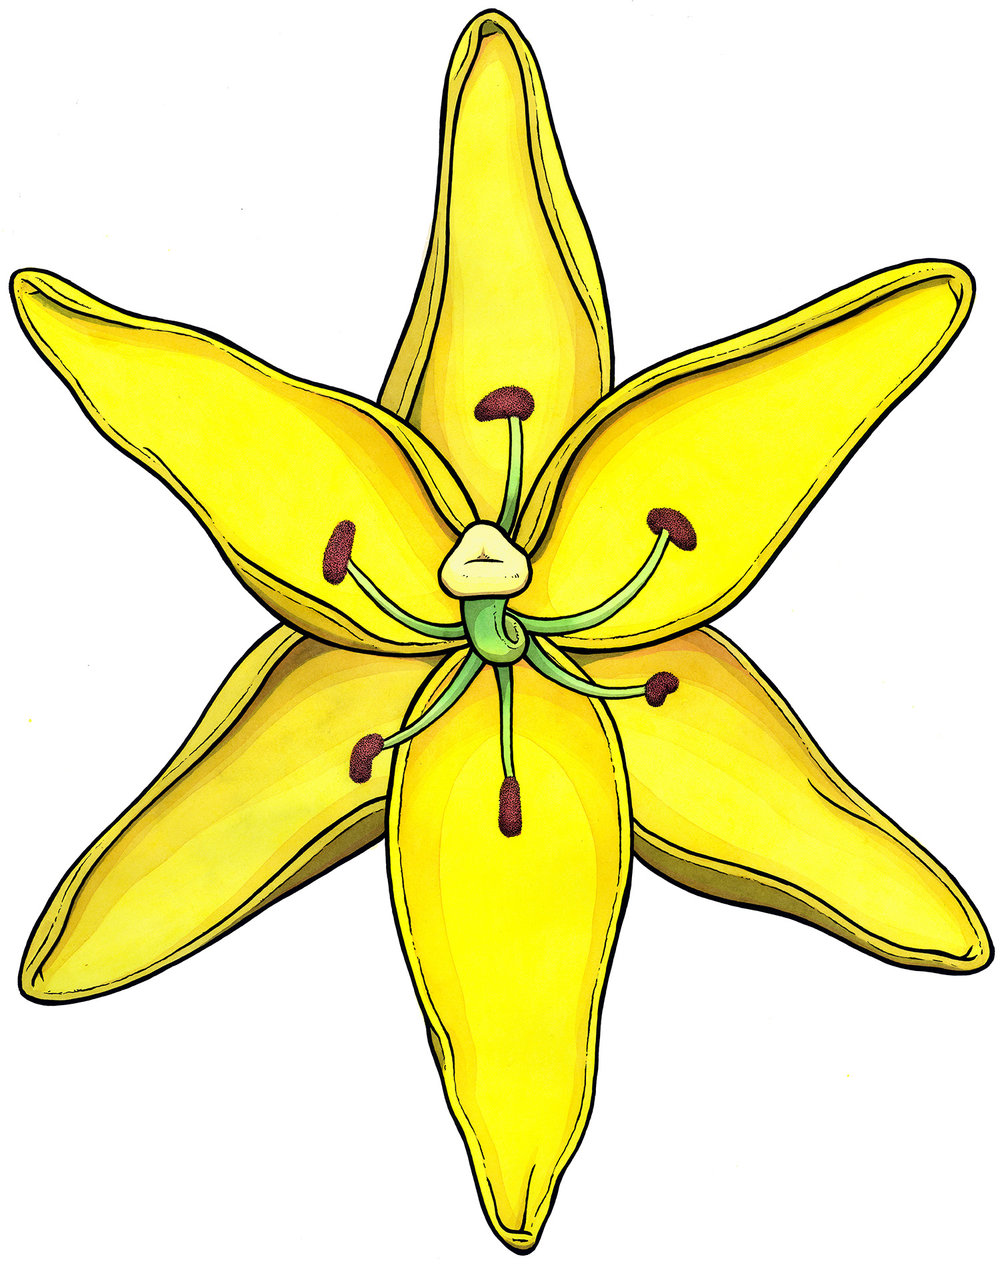 YellowLilly-web.jpg